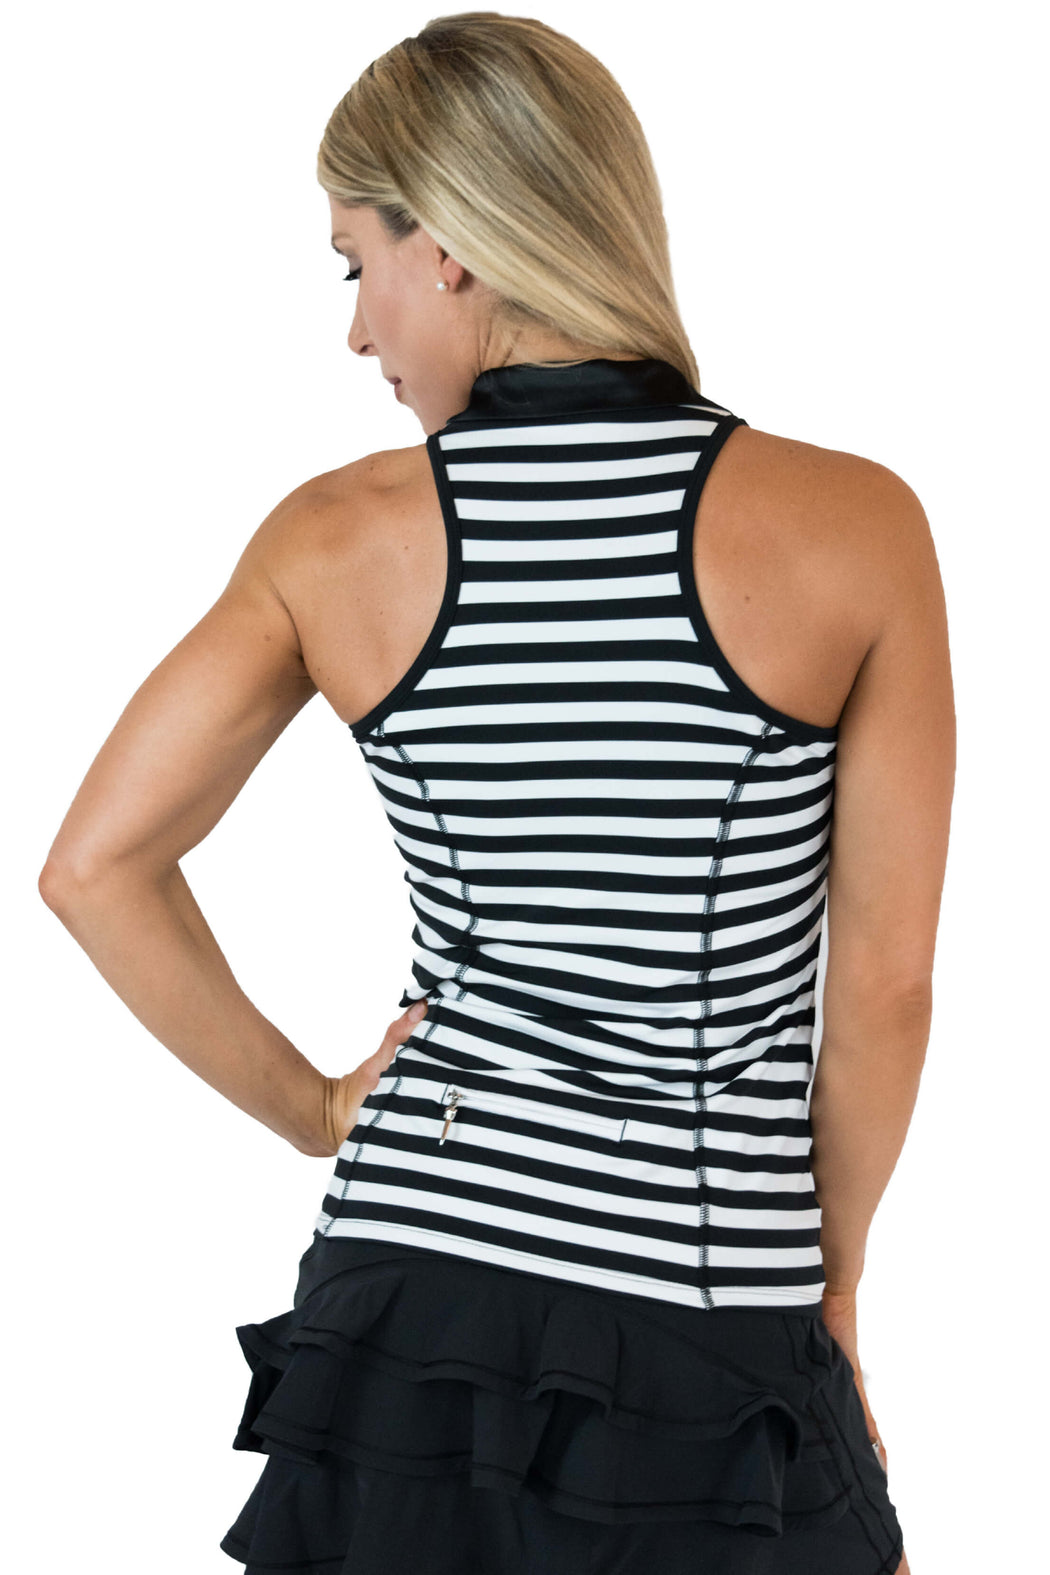 NEW! Racerback Golf Polo - Black & White Stripes - FlirTee Golf